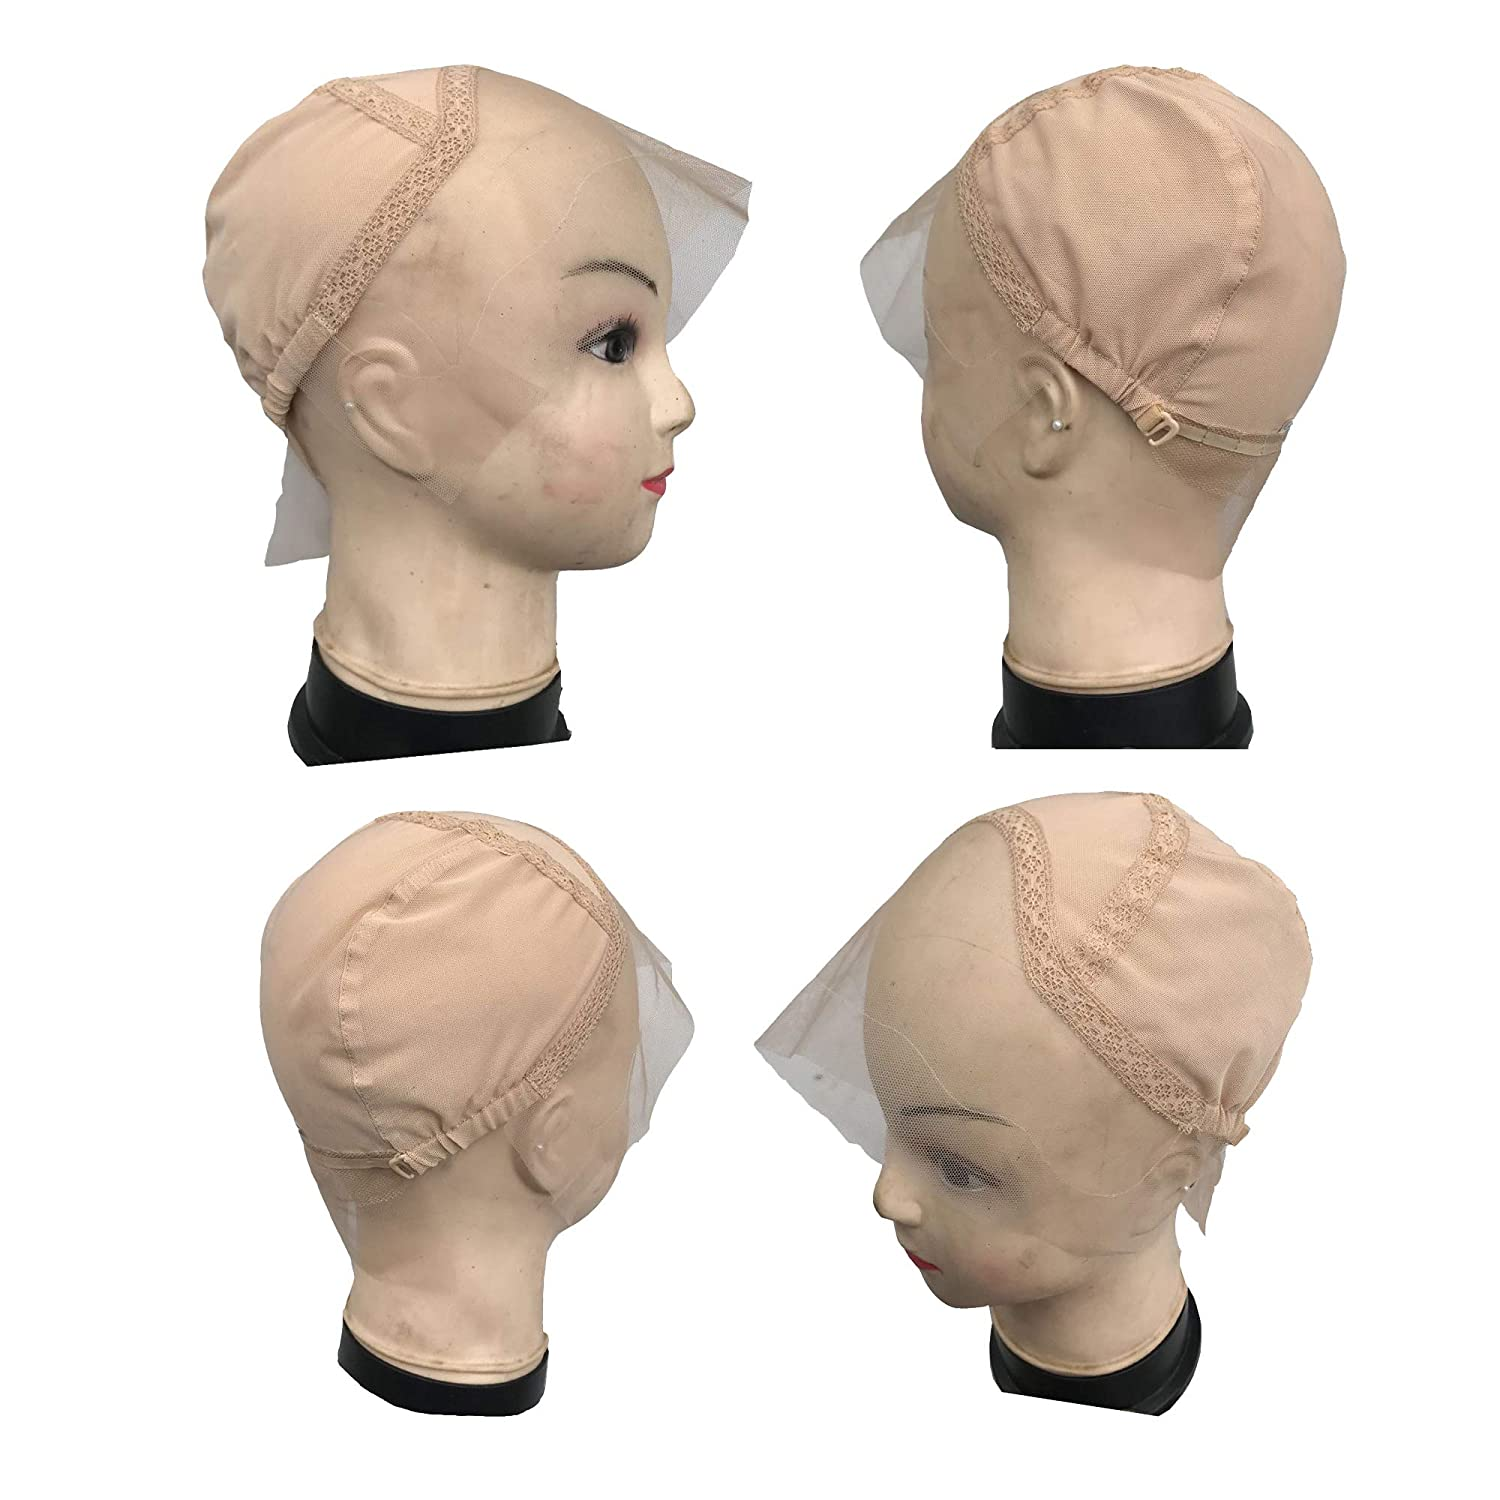 Popular brand in the world Max 62% OFF FURUN Lace Front Wig Cap for Wigs with Strap Adjustable Making G